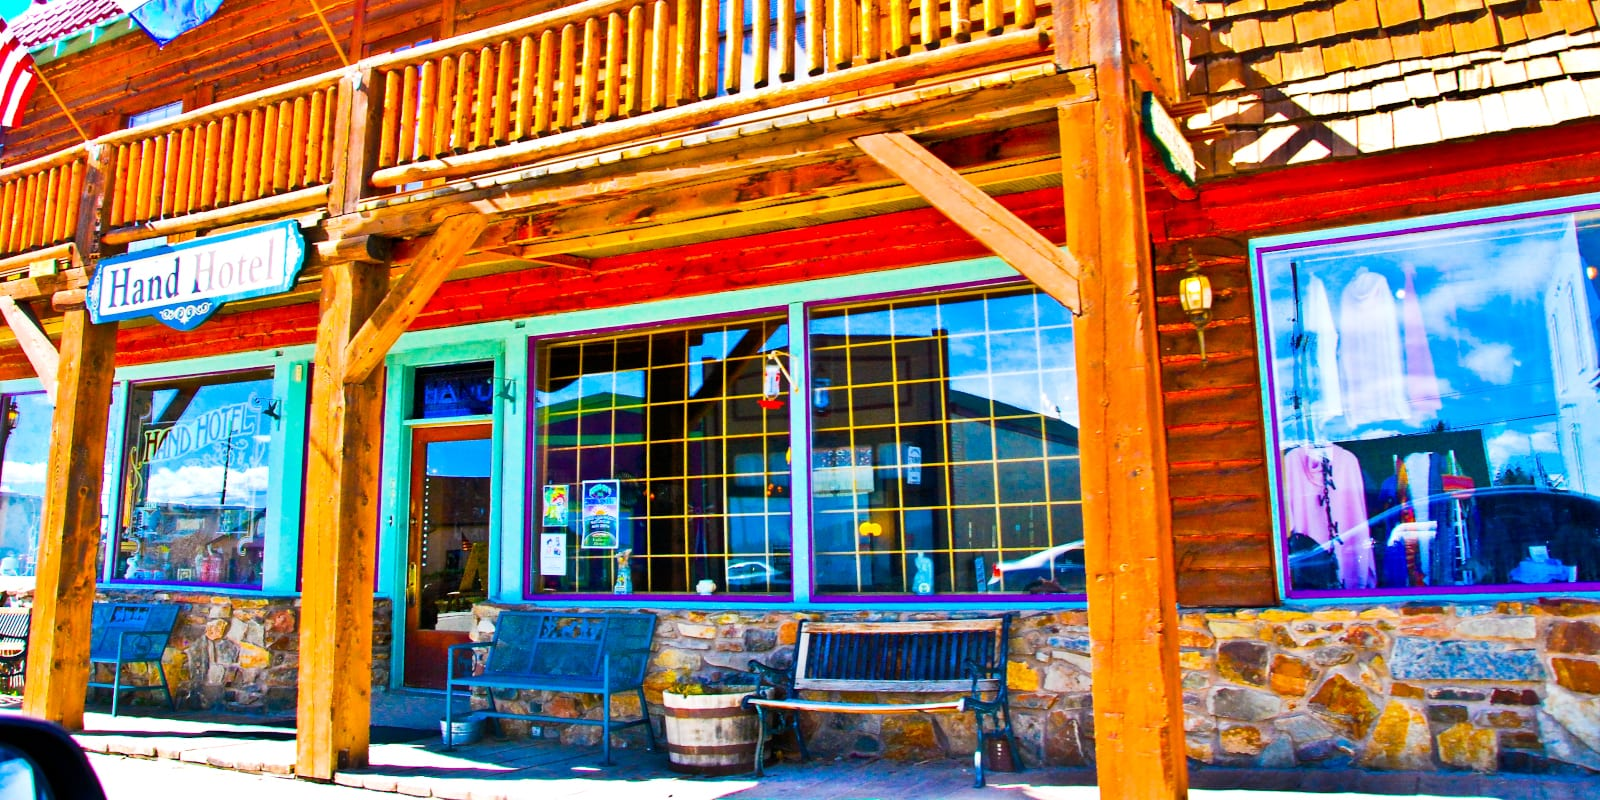 Hand Hotel Bed & Breakfast in Fairplay, Colorado